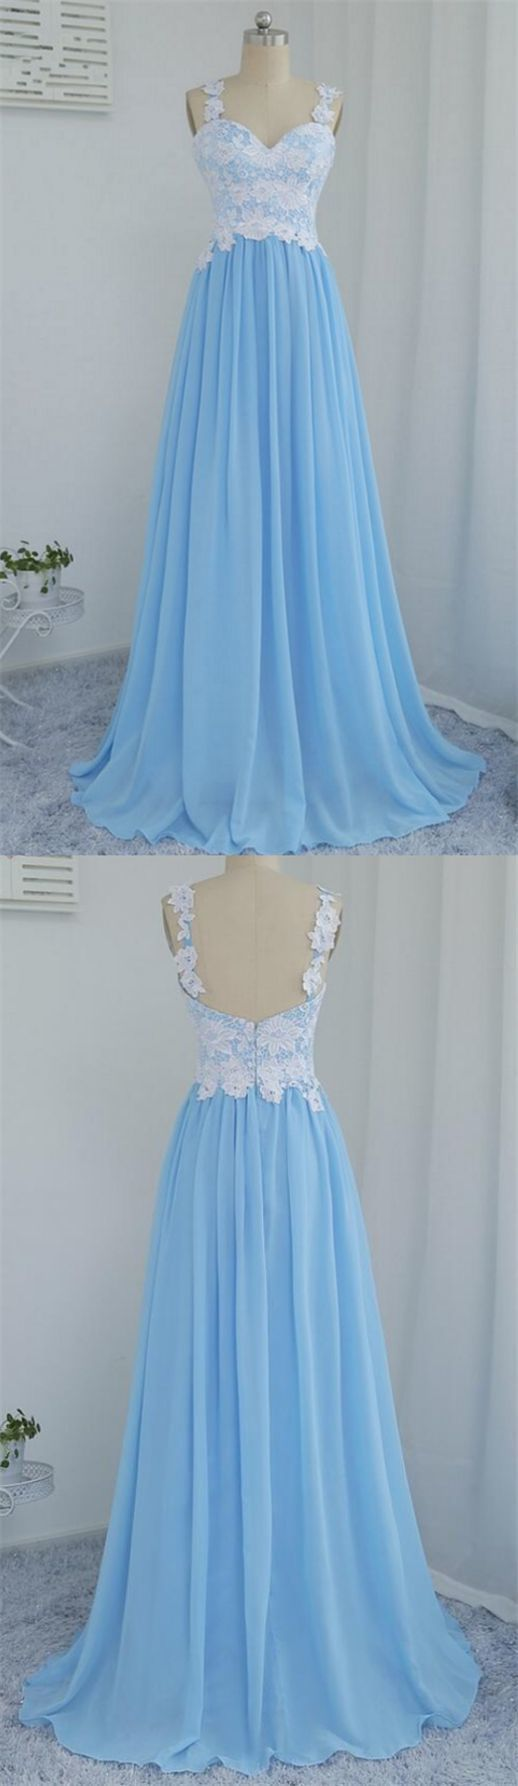 Custom Made Beautiful Blue Sweetheart Sleeveless A Line Prom Dresses Lace